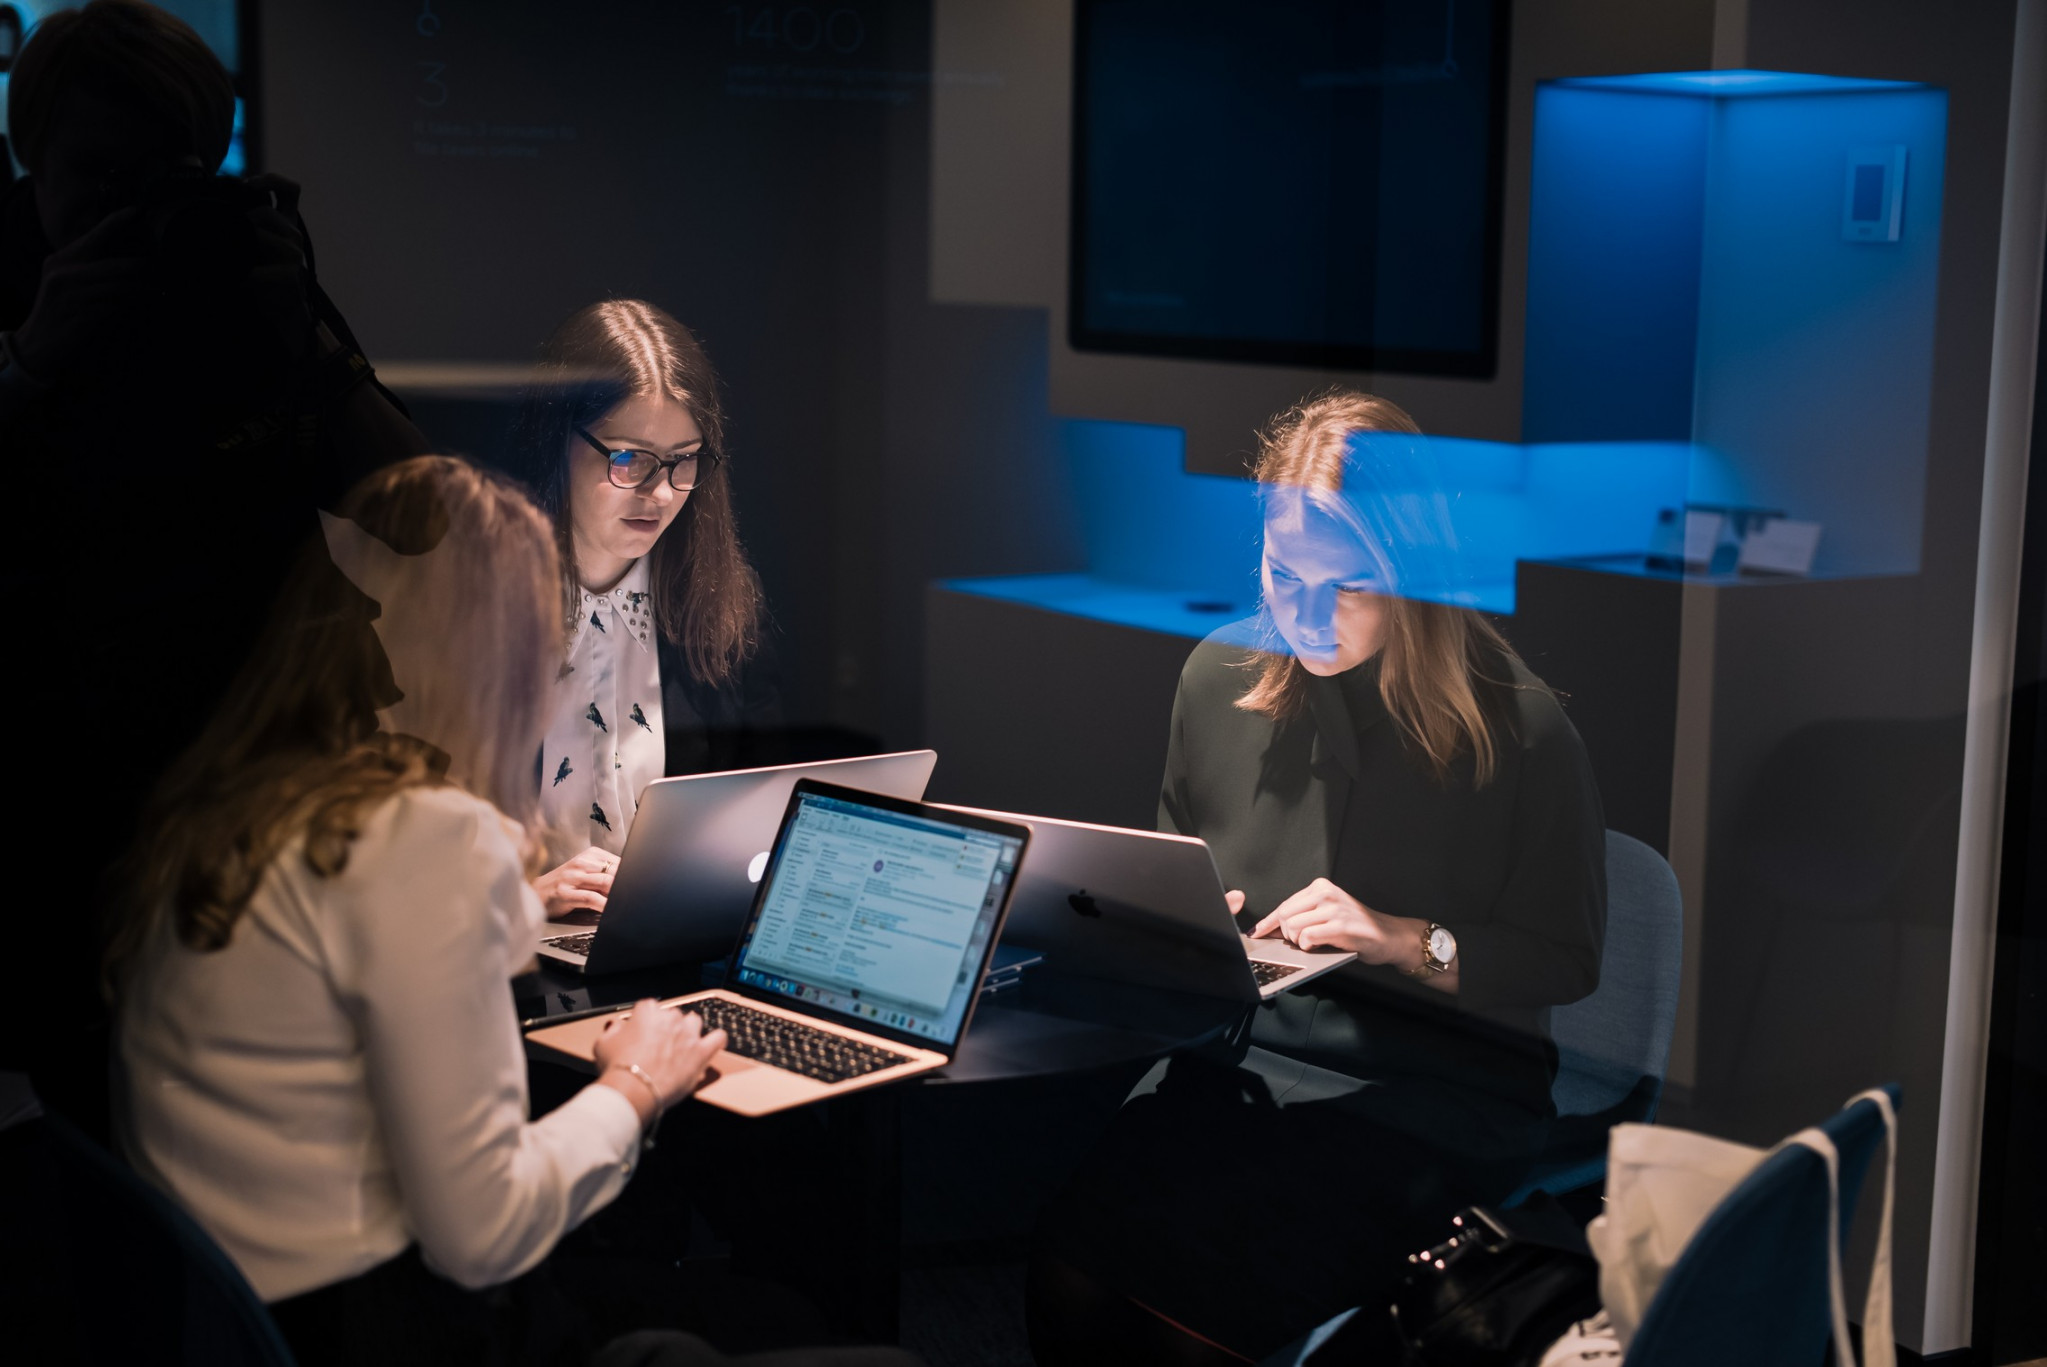 Group of woman working on computers